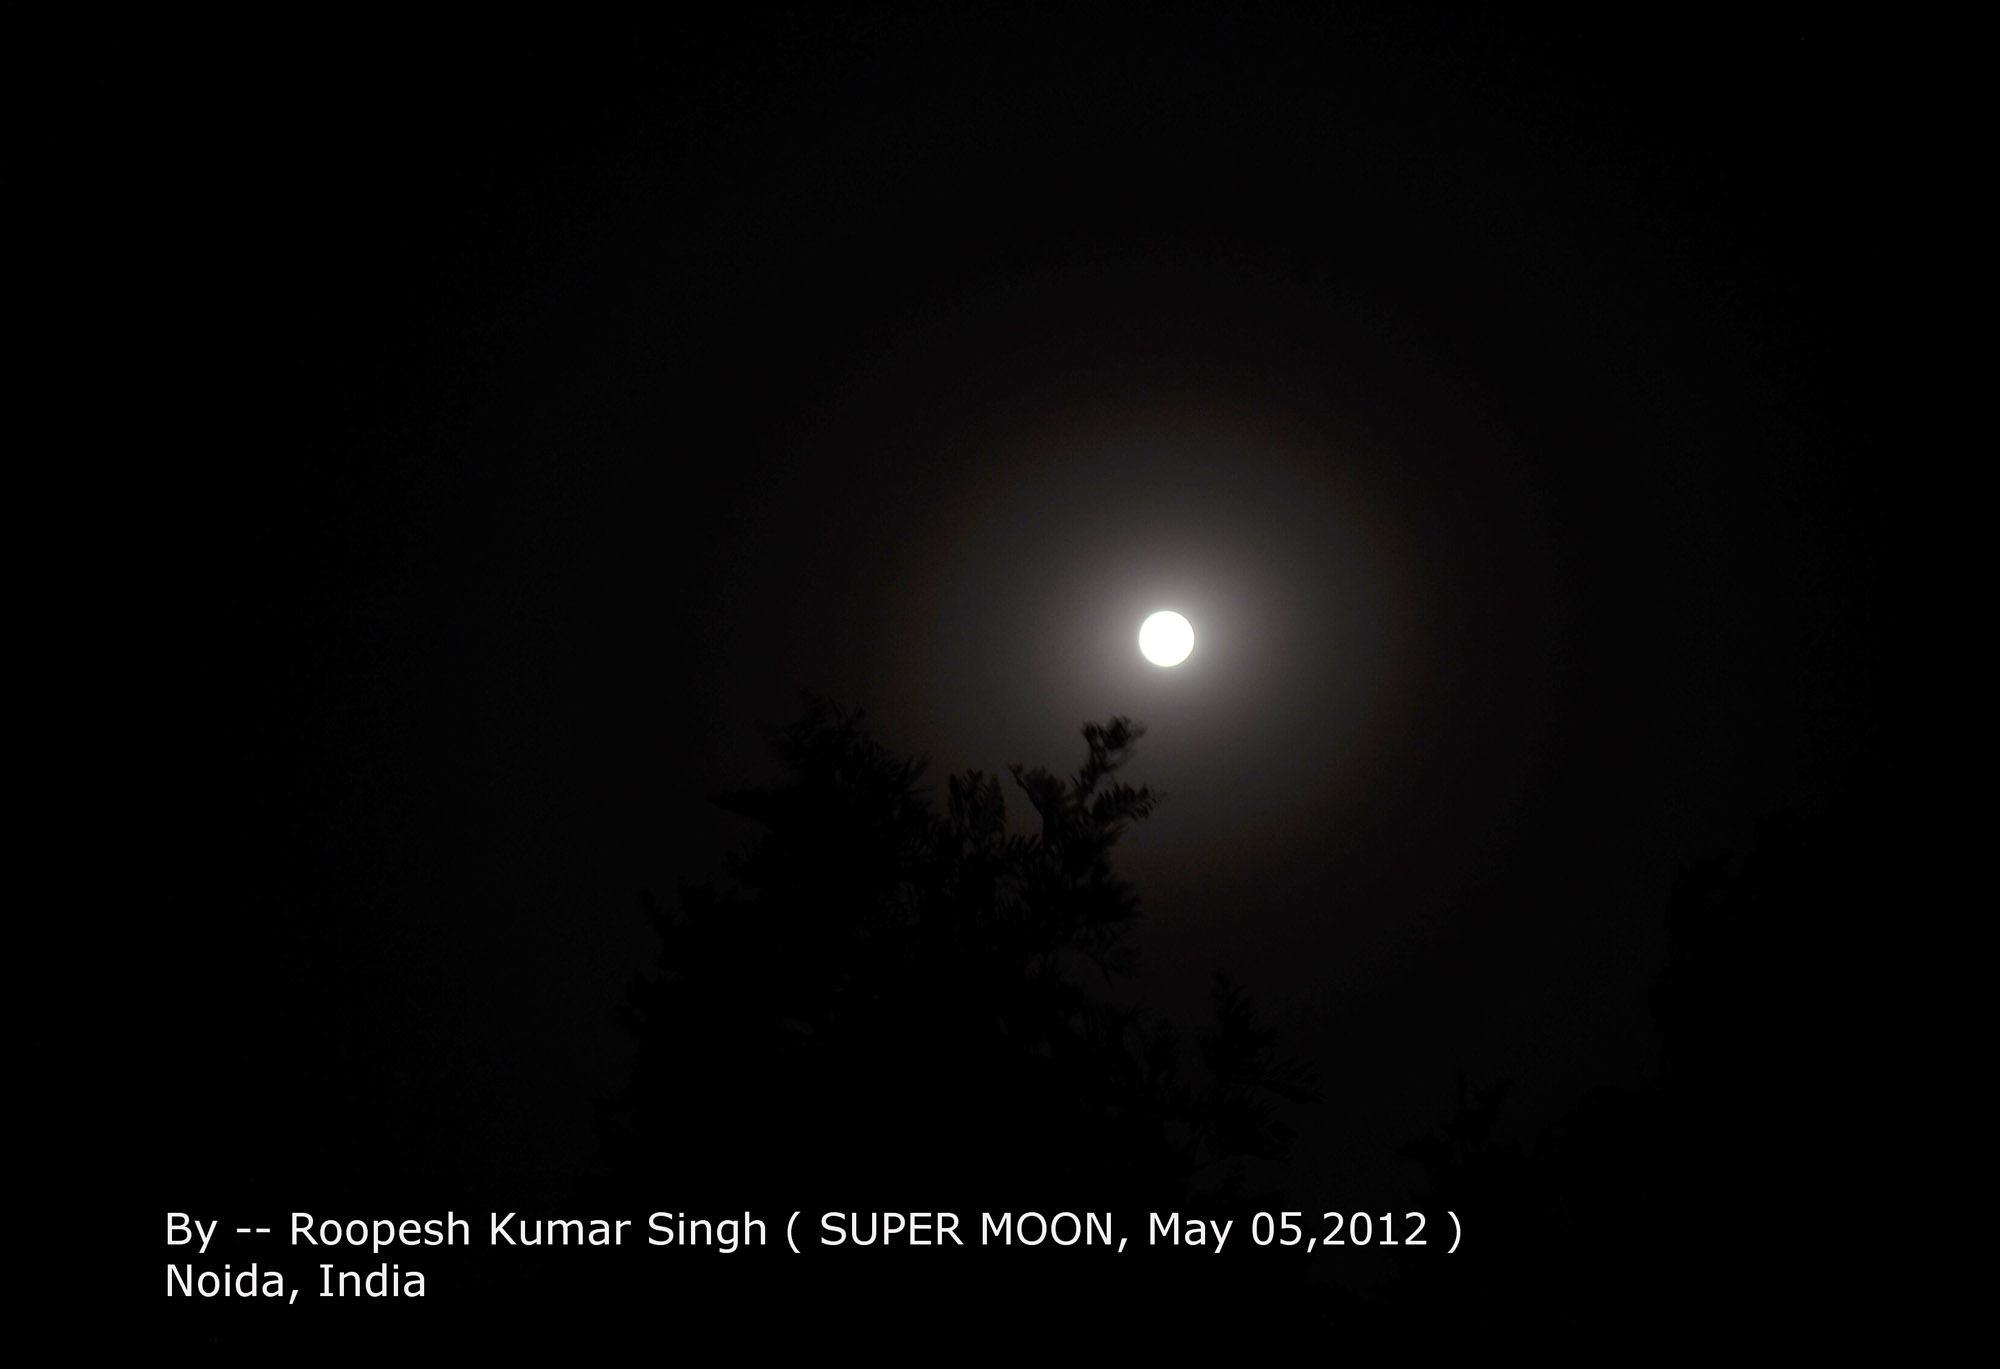 Supermoon 2012 from Noida, India: Roopesh Kumar Singh